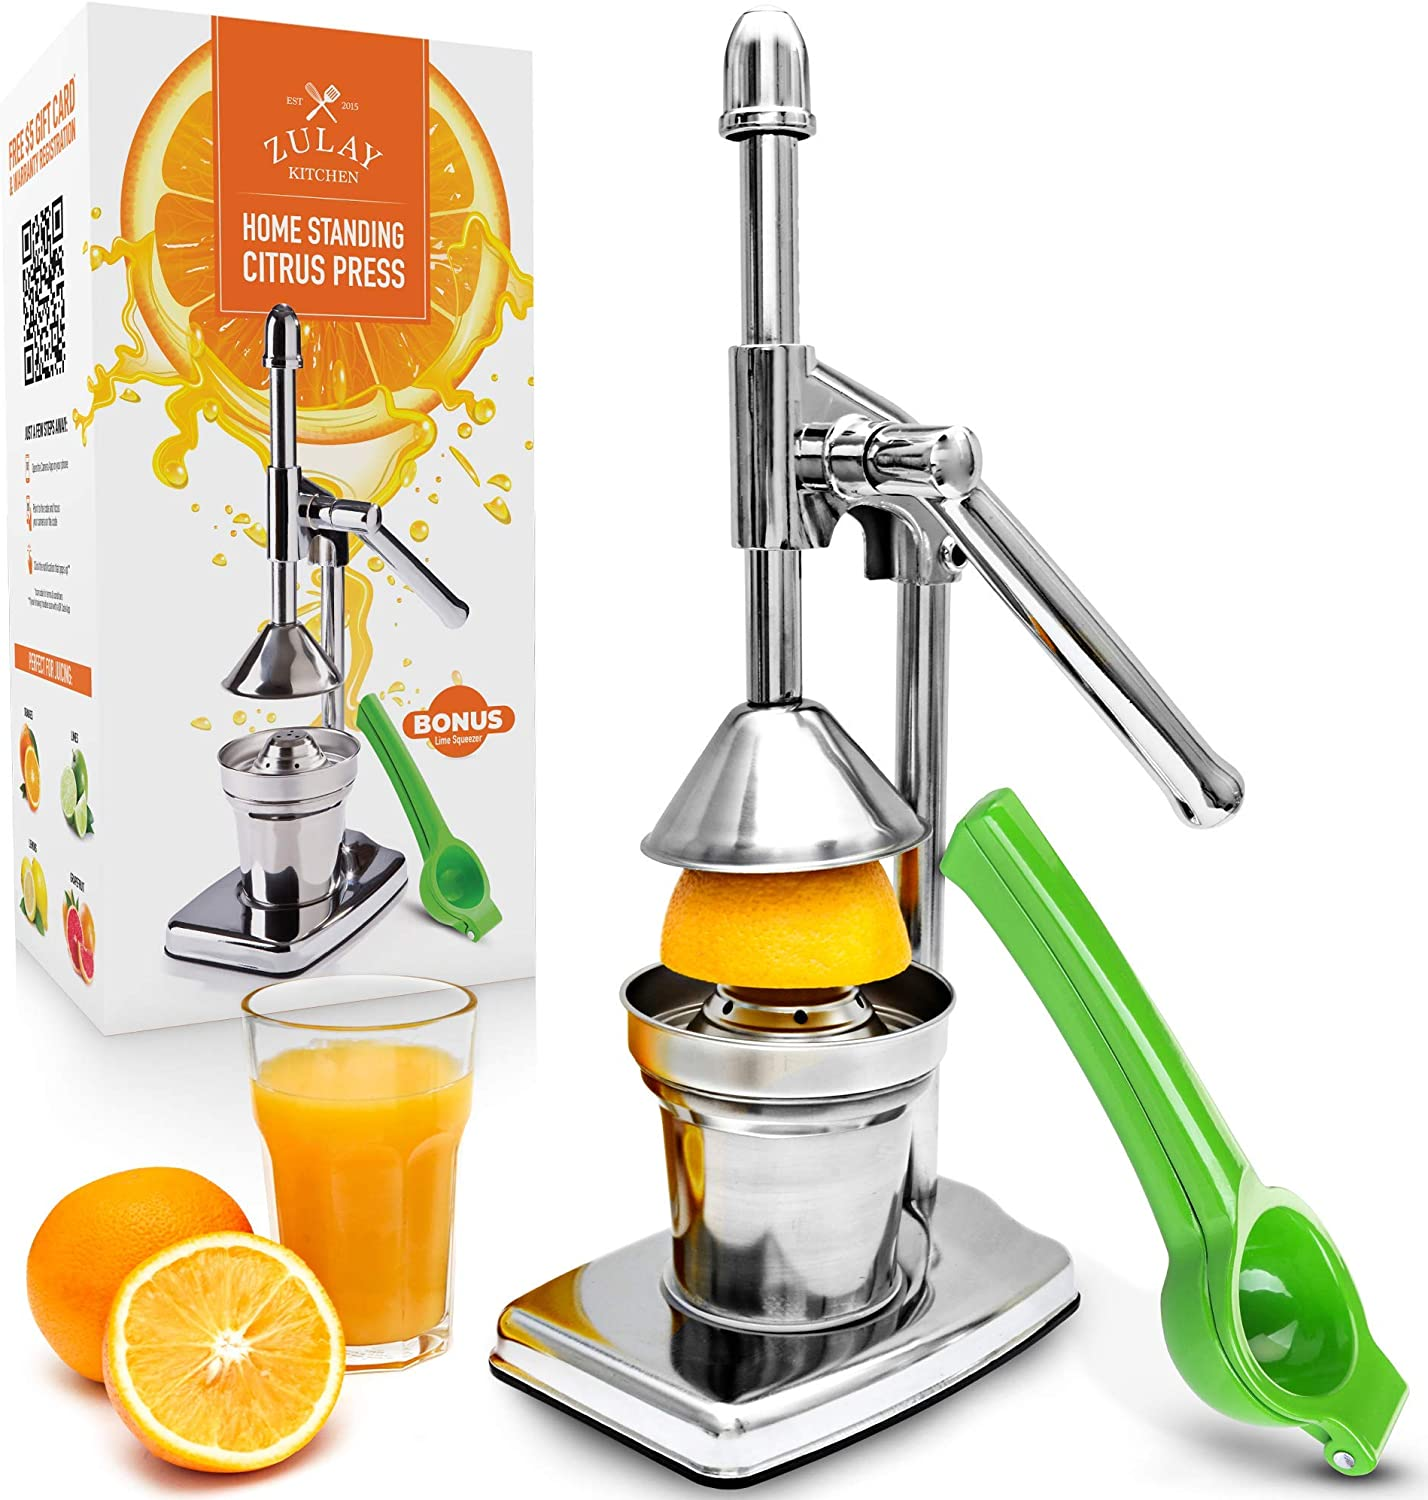 Zulay Professional Citrus Juice Press - Small Manual Juice Press and Orange Squeezer with Bonus Metal Lime Squeezer, Premium Heavy Duty Mini Orange Juice Press, Lemon Squeezer & Lime Squeezer Stand (Renewed)